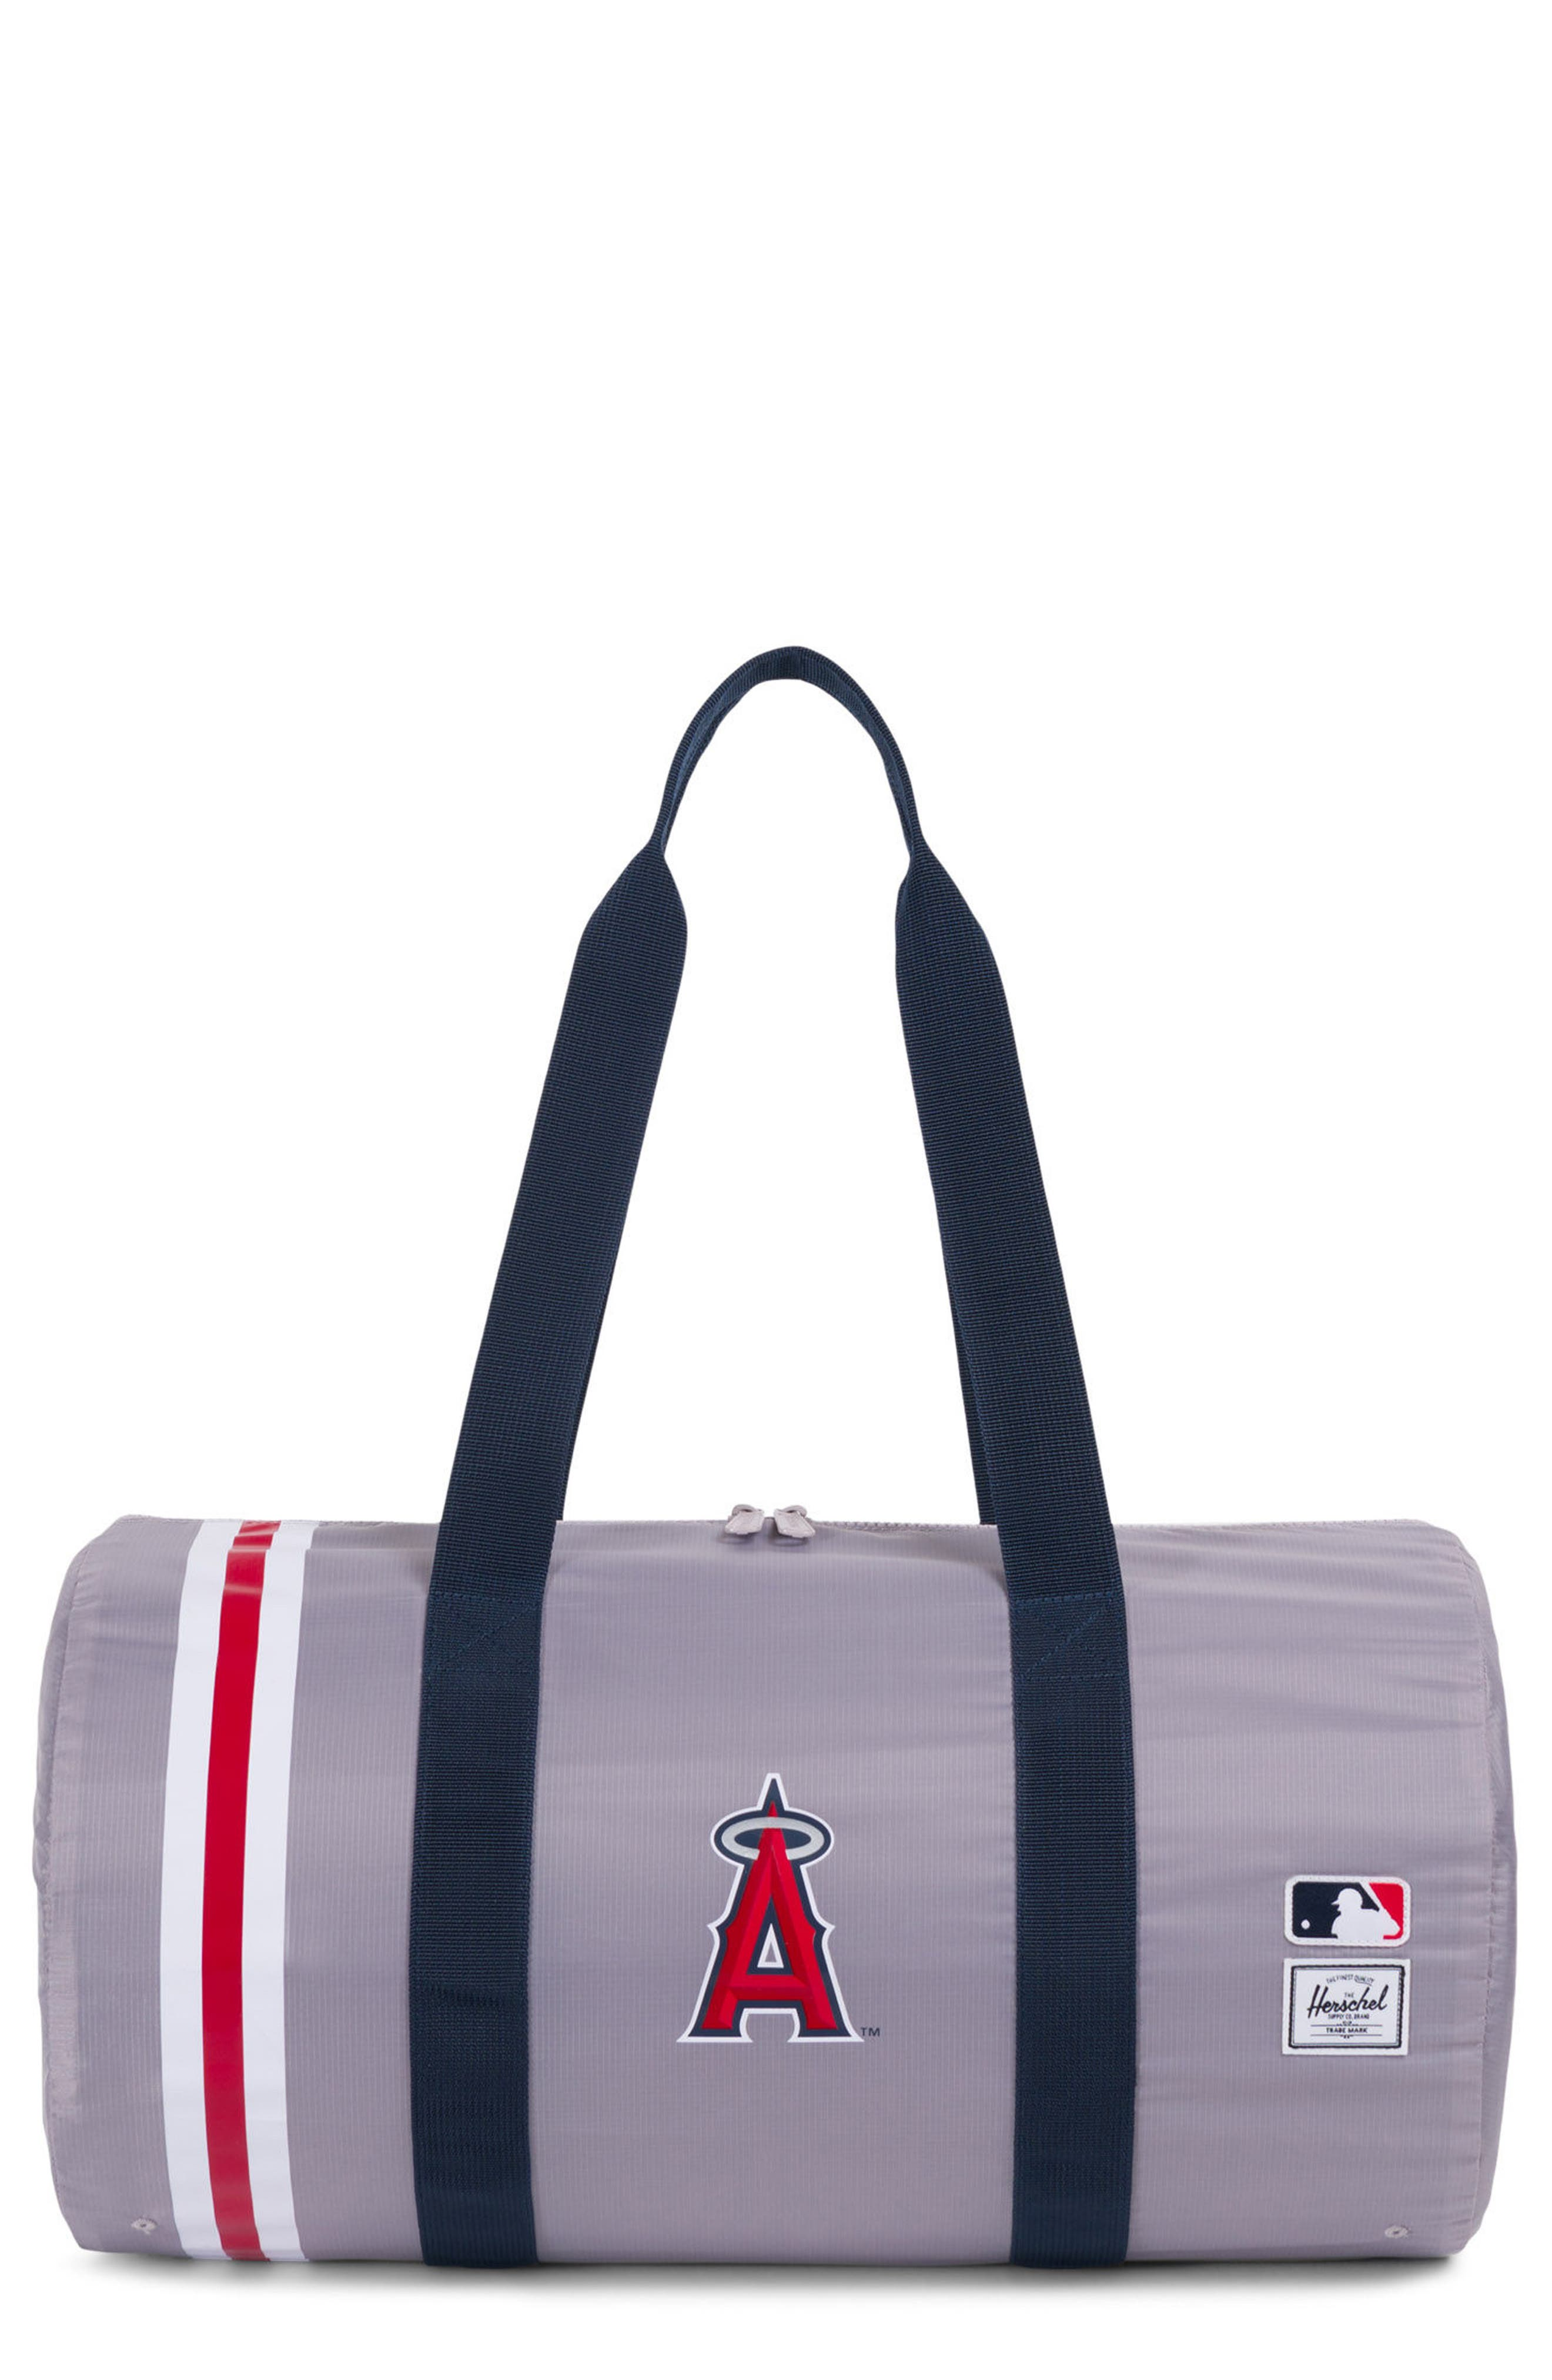 11bb48e3c3ad Herschel Supply Co. Packable - Mlb American League Duffel Bag - Blue In Los  Angeles